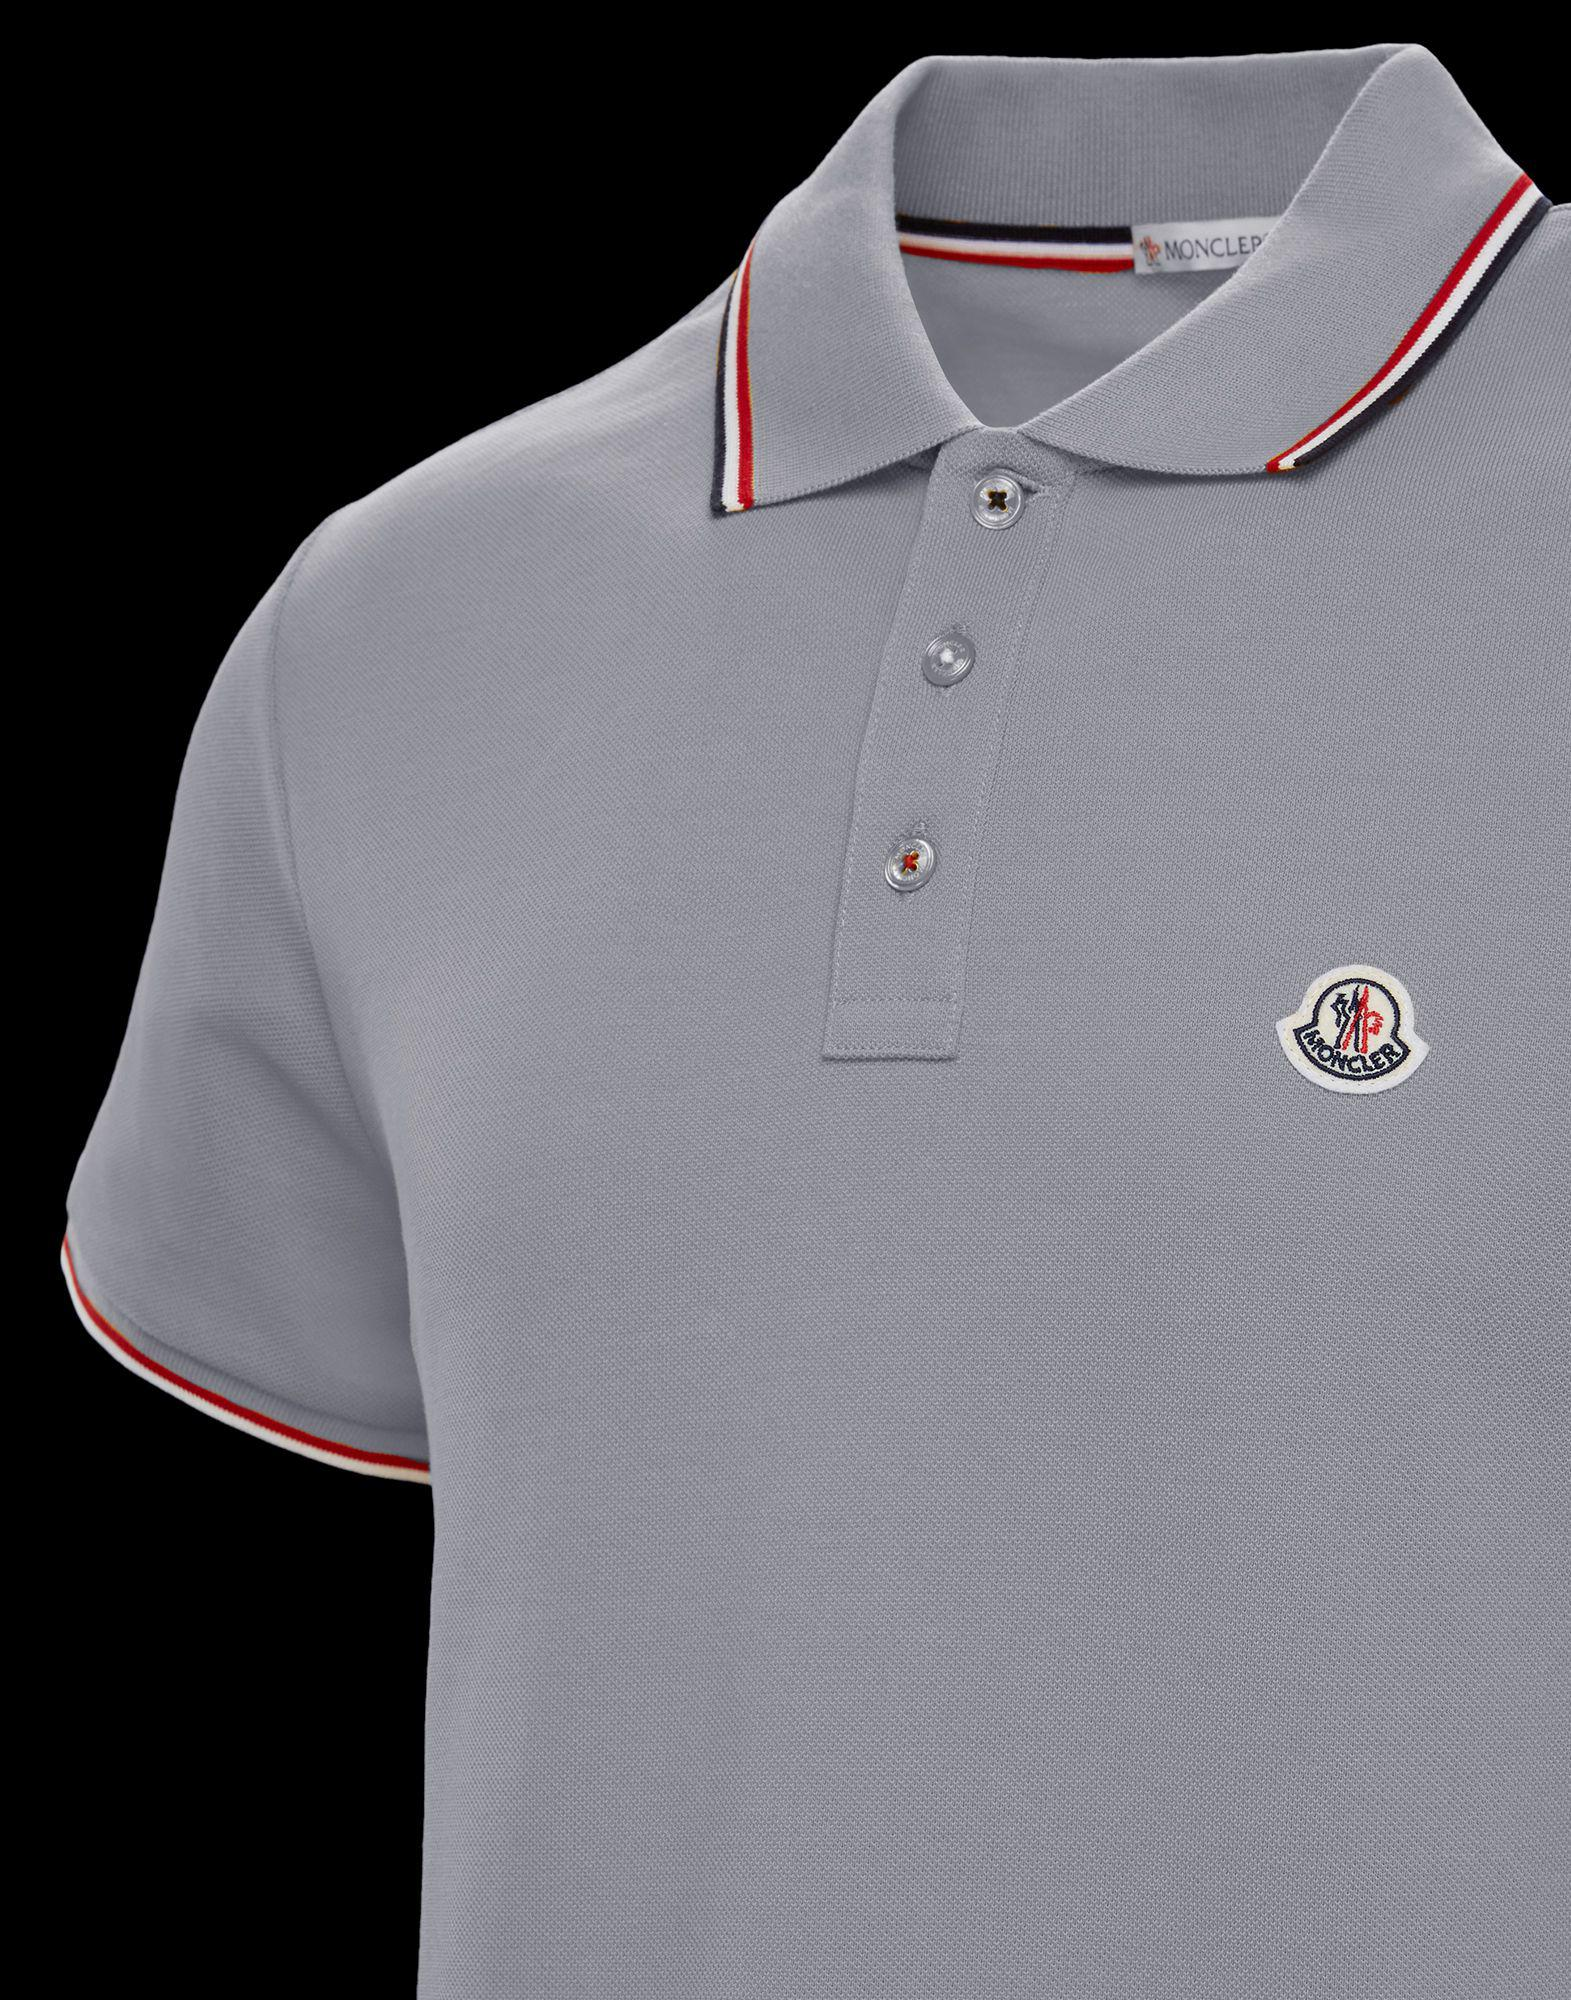 7d69e2fb9199 Lyst - Moncler Polo Shirt in Gray for Men